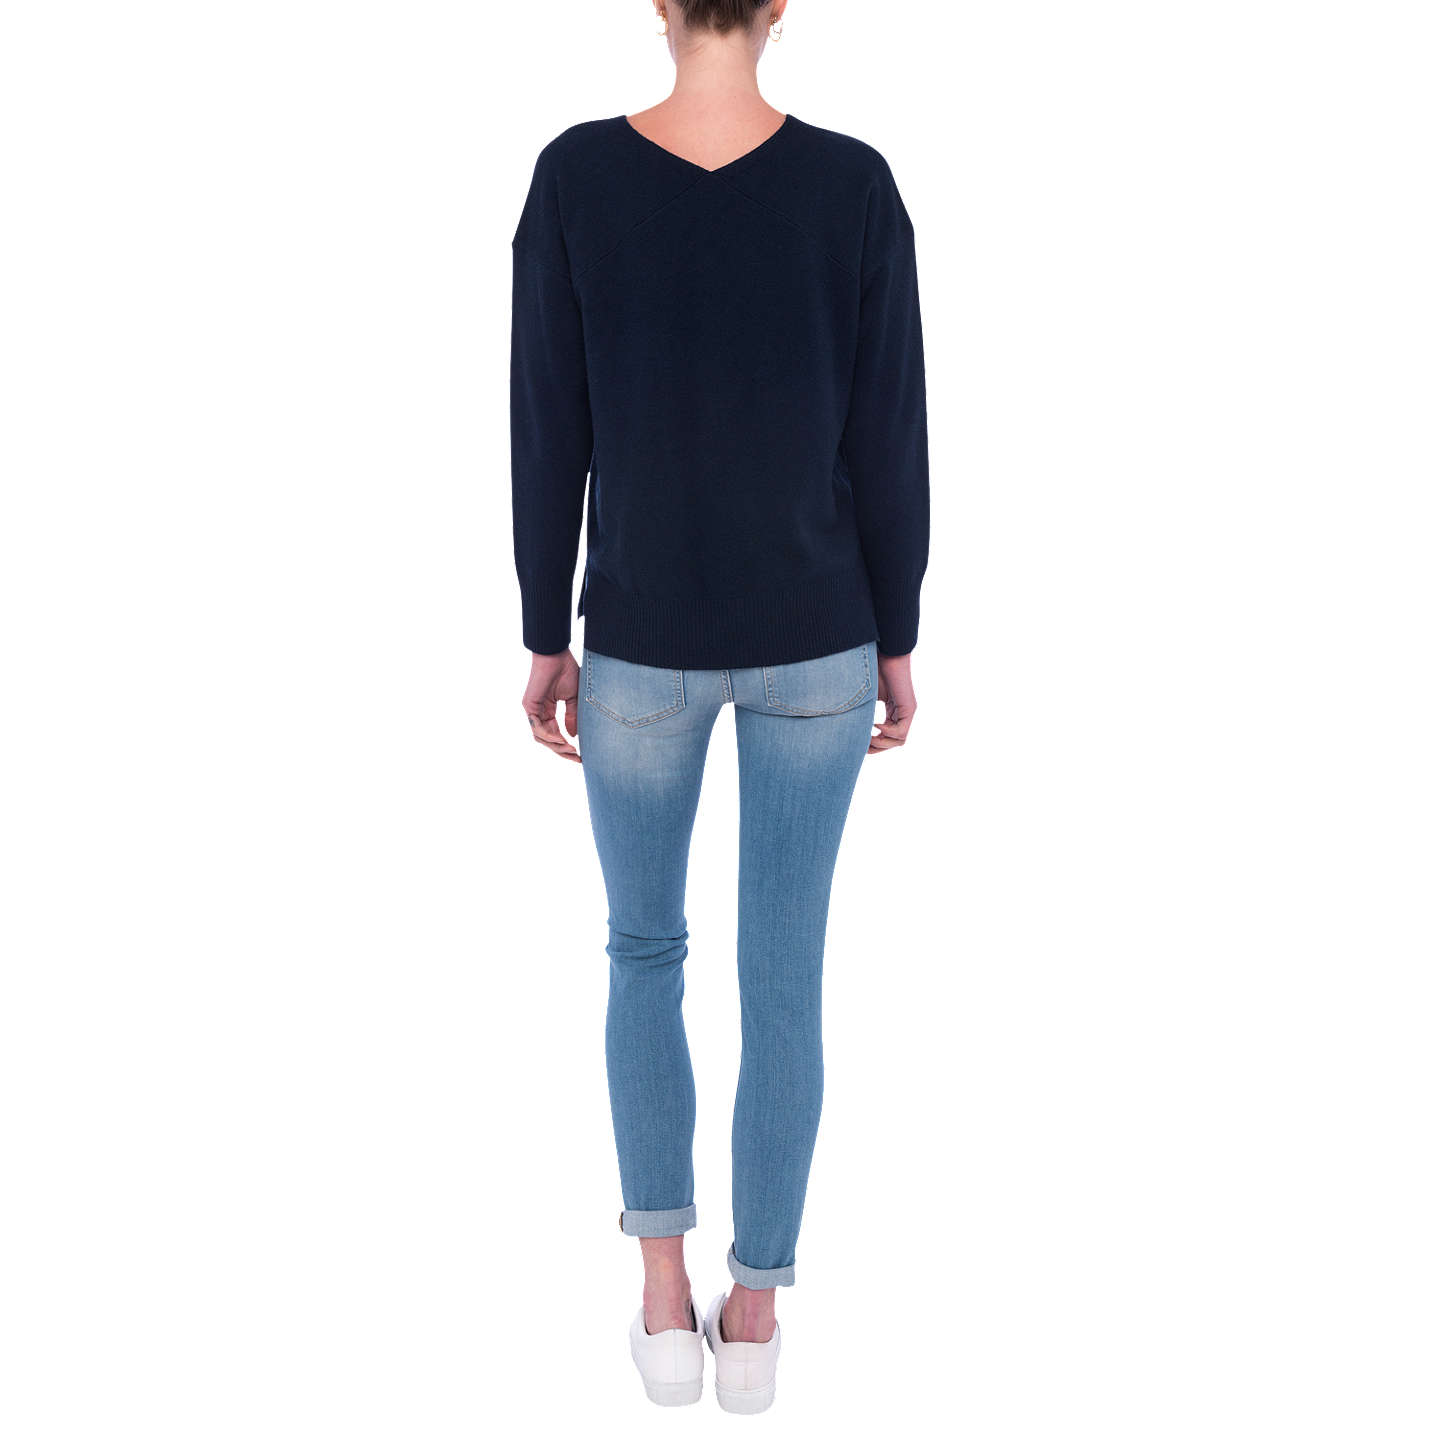 BuyFrench Connection Della Long Sleeve Jumper, Nocturnal, XS Online at johnlewis.com